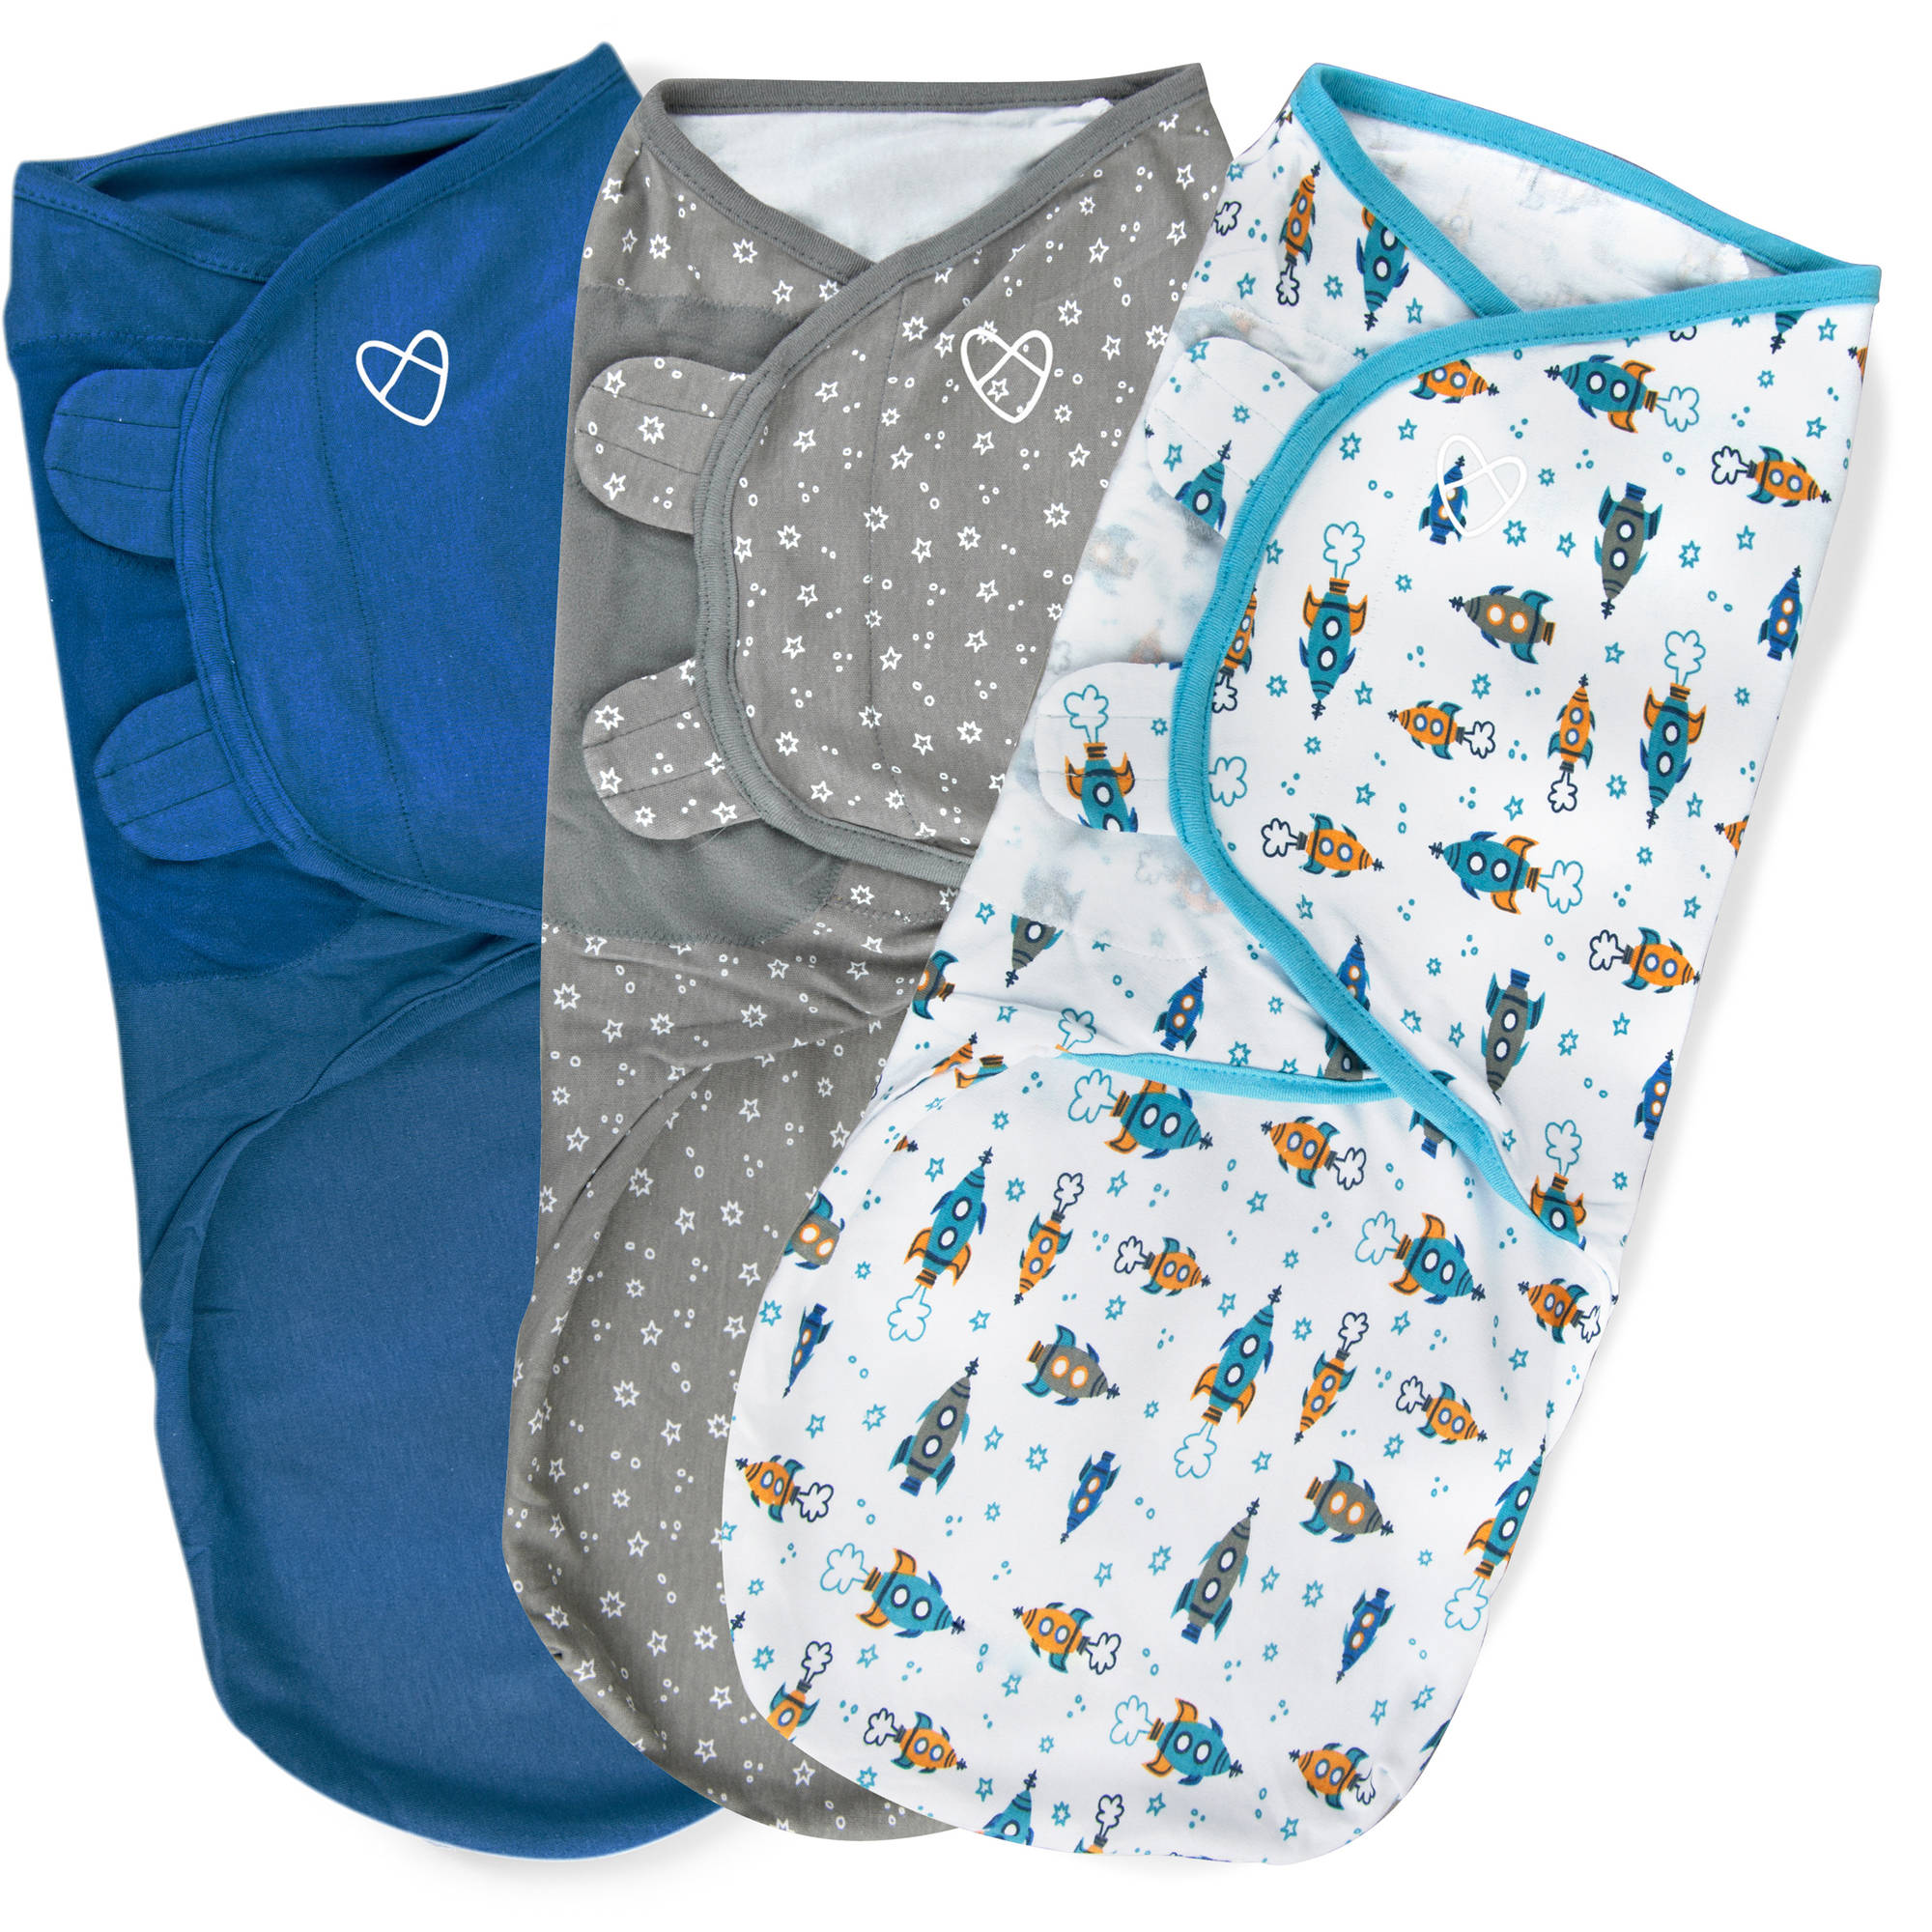 SwaddleMe Original Swaddle, 3-Pack, Superstar, Large